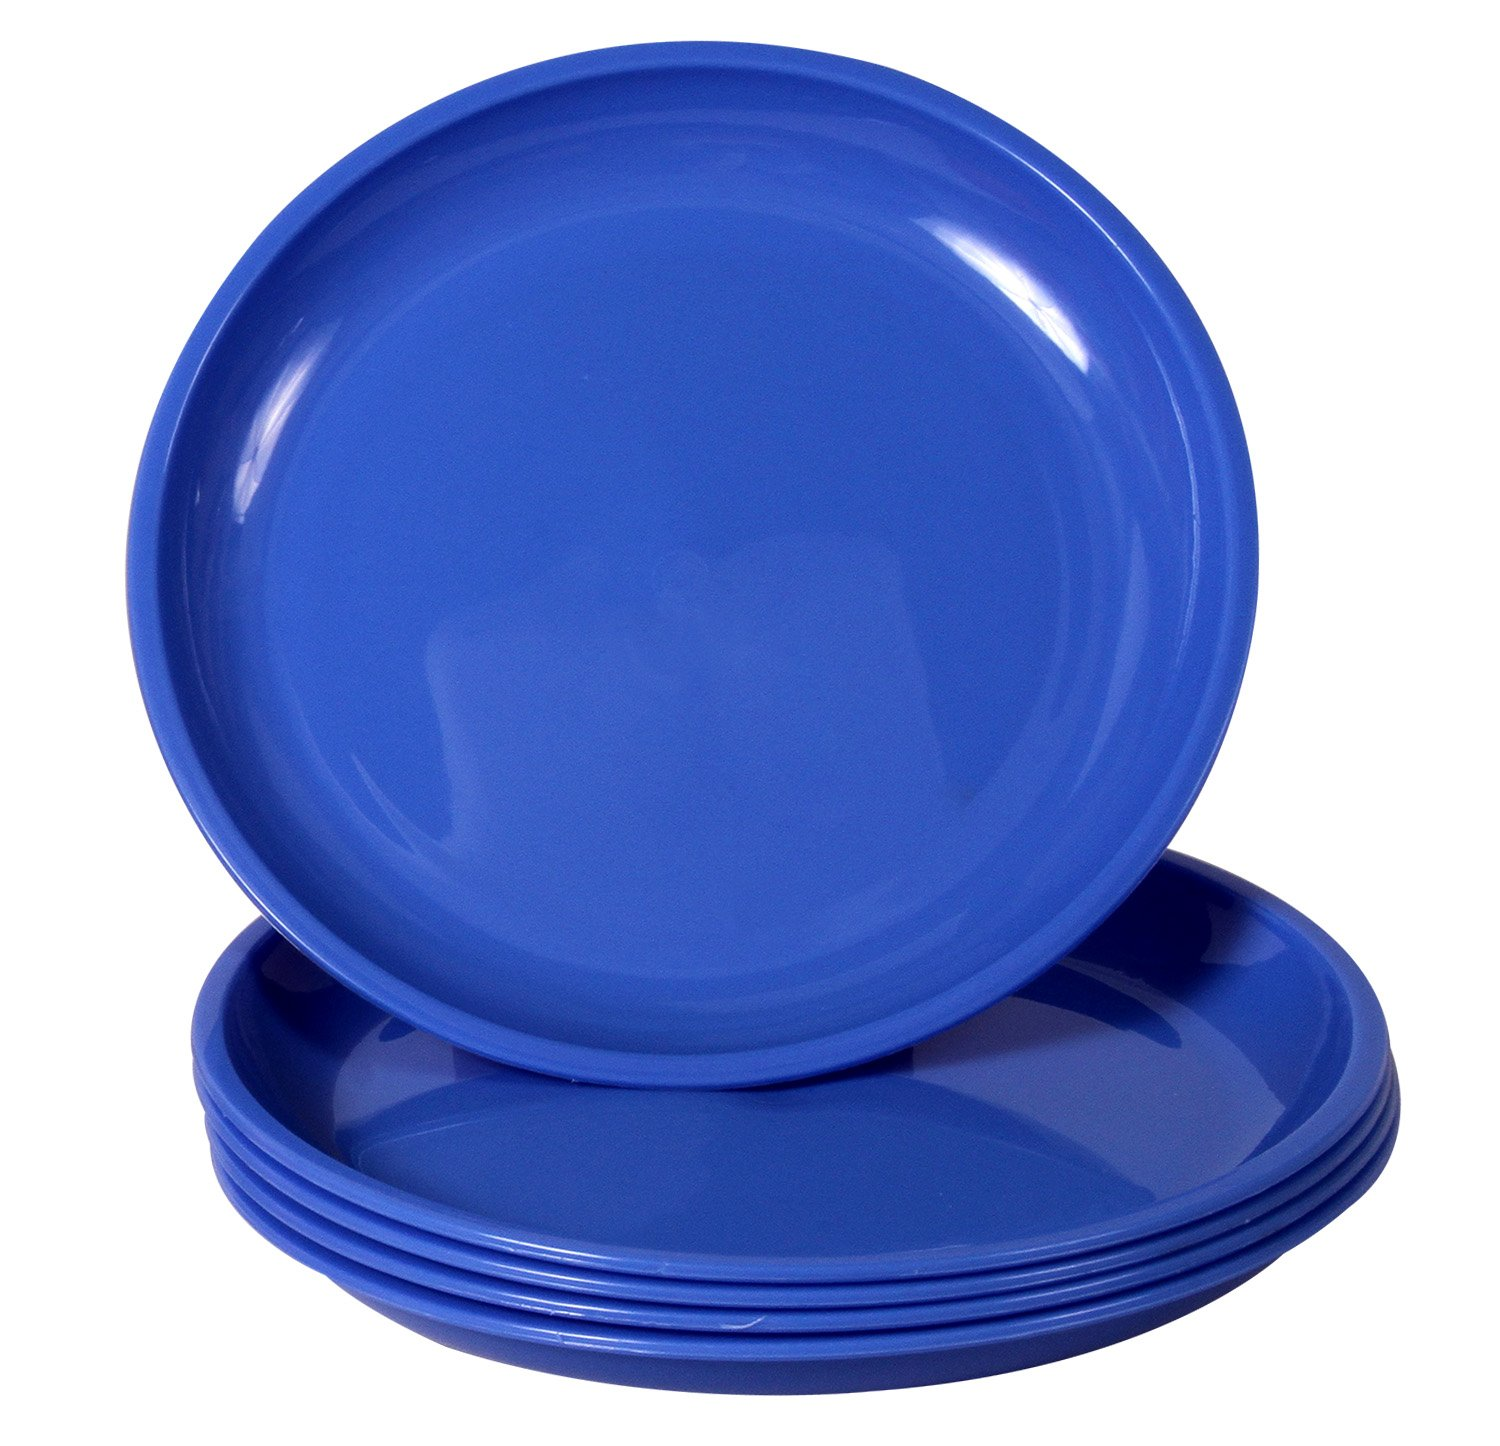 Buy Ruchi Round Dinner Plates 25.4cm Set of 6 Blue Online at Low Prices in India - Amazon.in  sc 1 st  Amazon.in : microwave dinner plates - pezcame.com